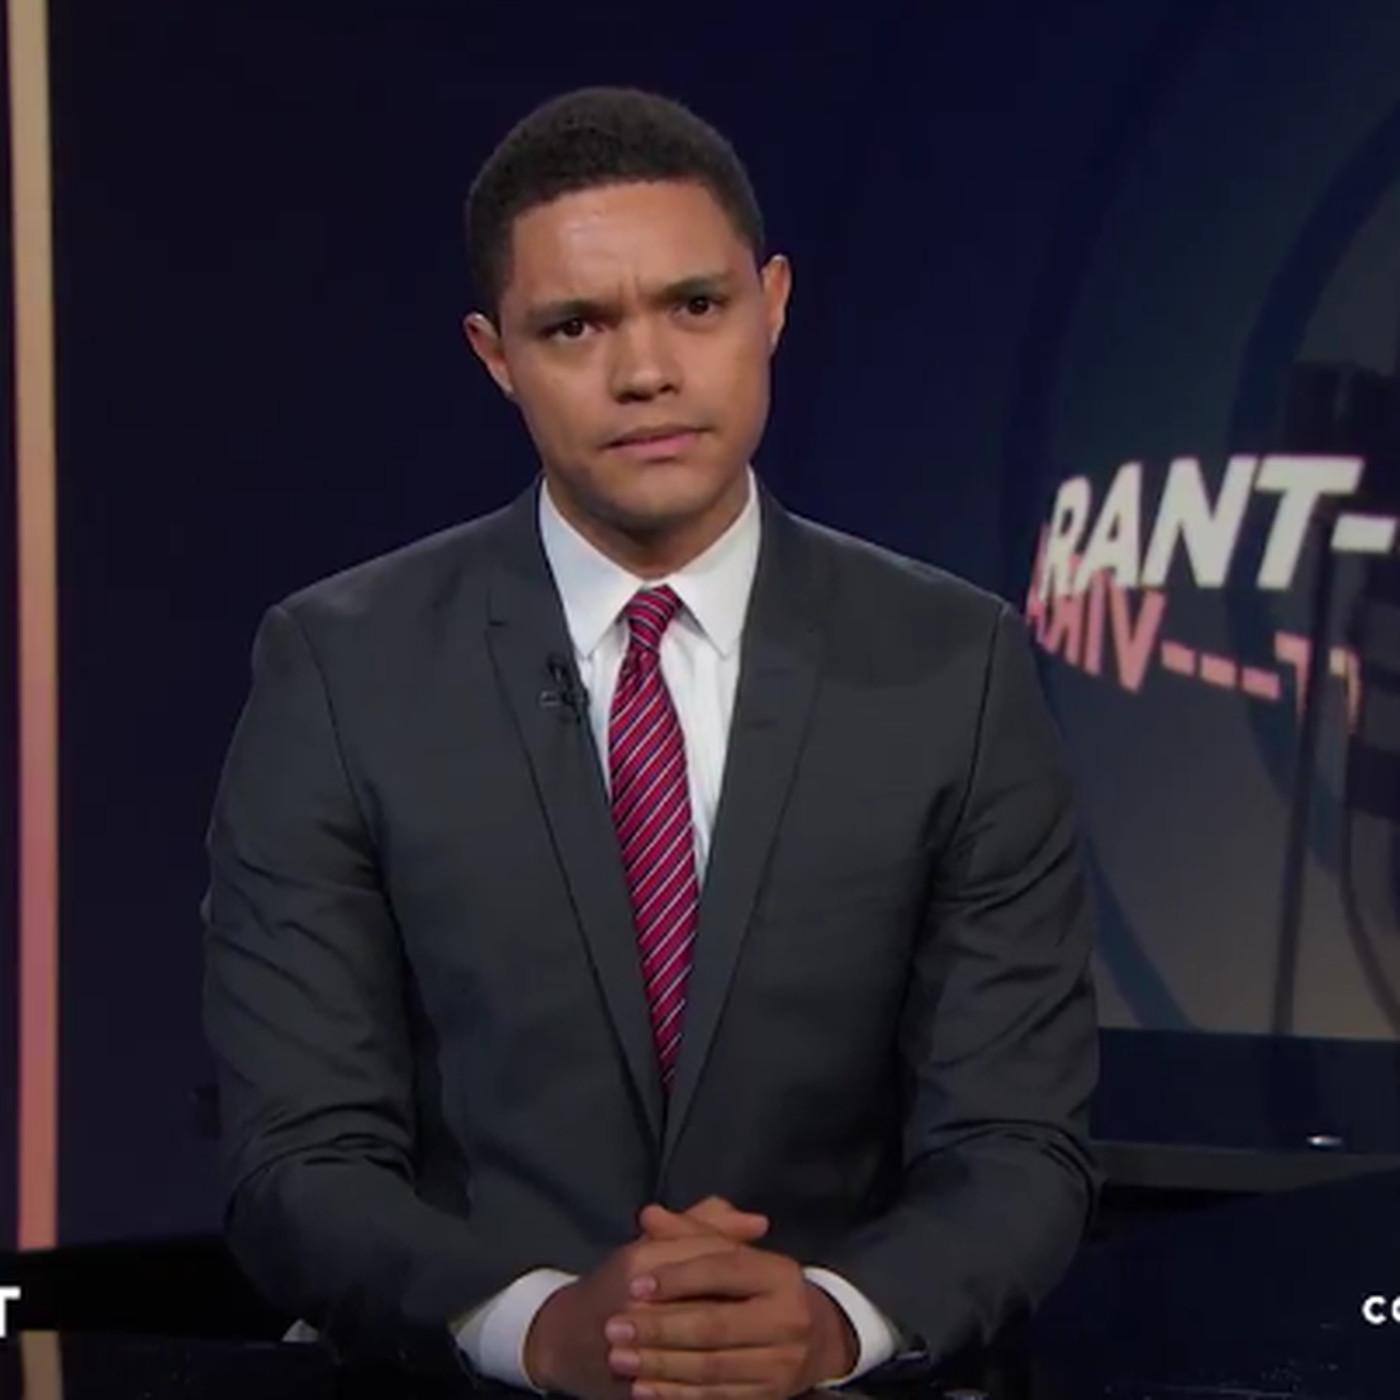 The Daily Show's Trevor Noah unleashes the anti-Trump rant you've ...